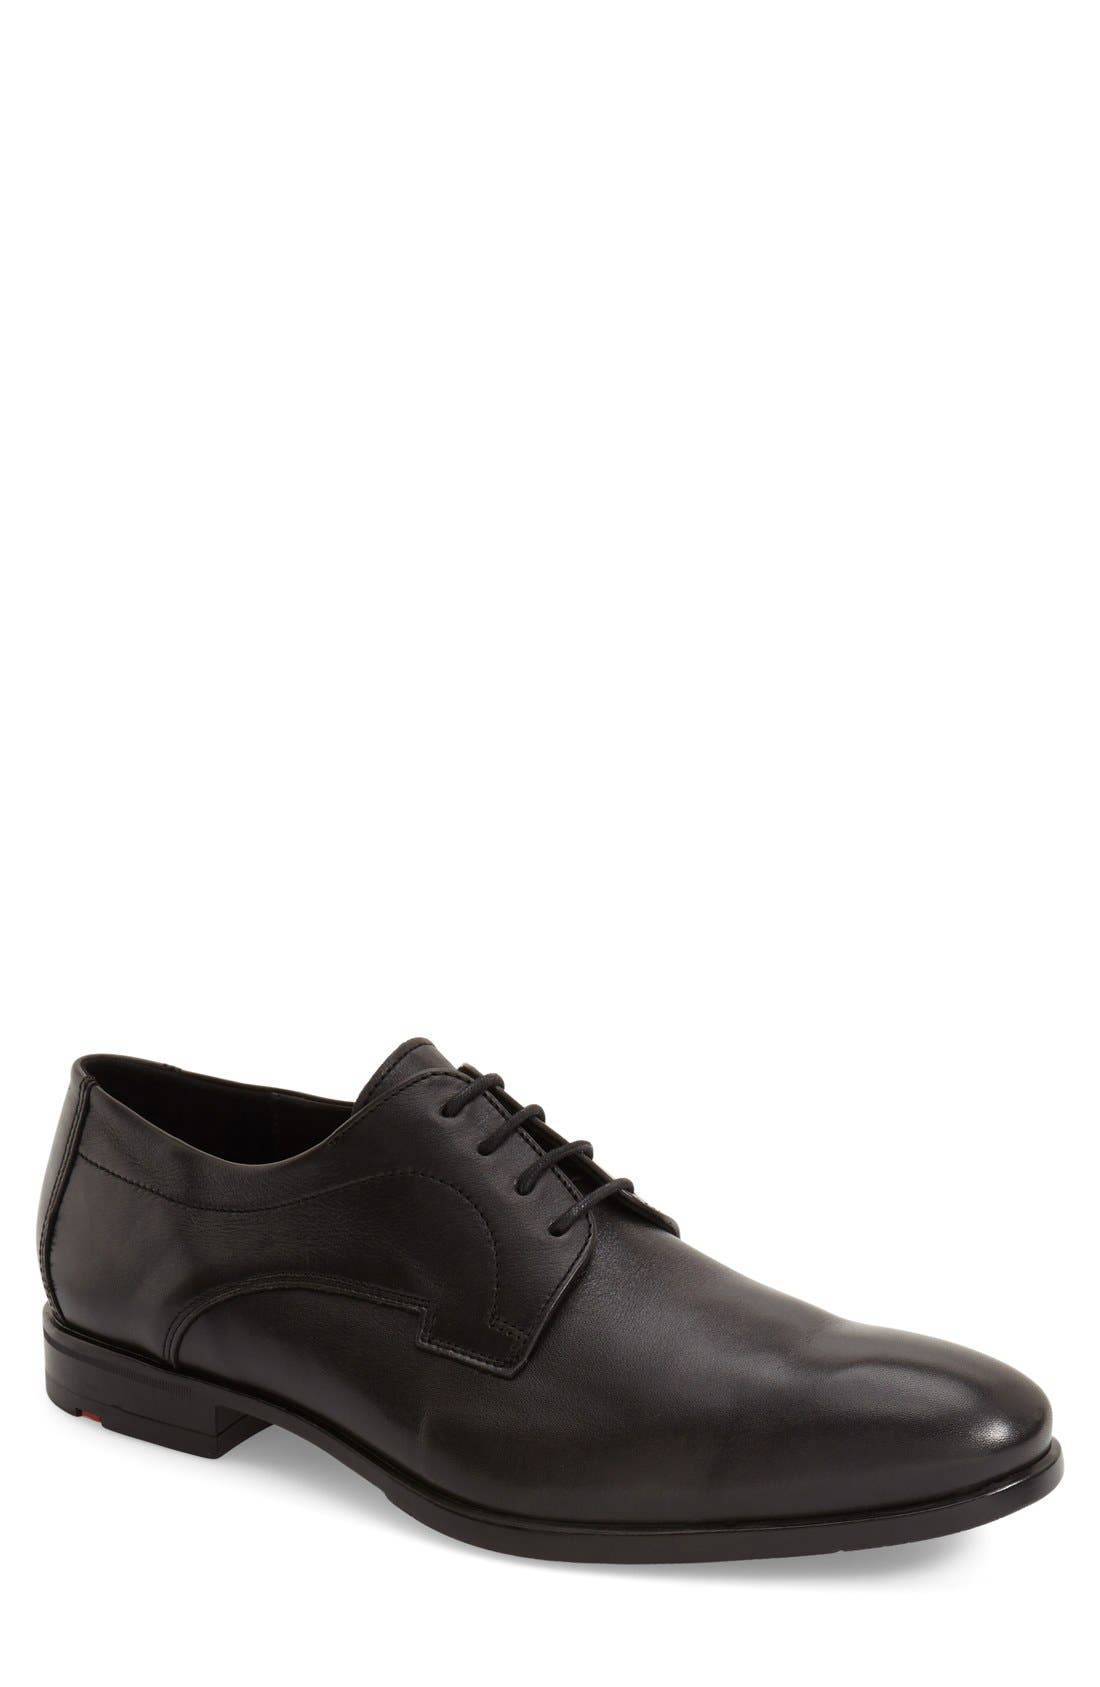 'Recit' Plain Toe Derby,                         Main,                         color, 001